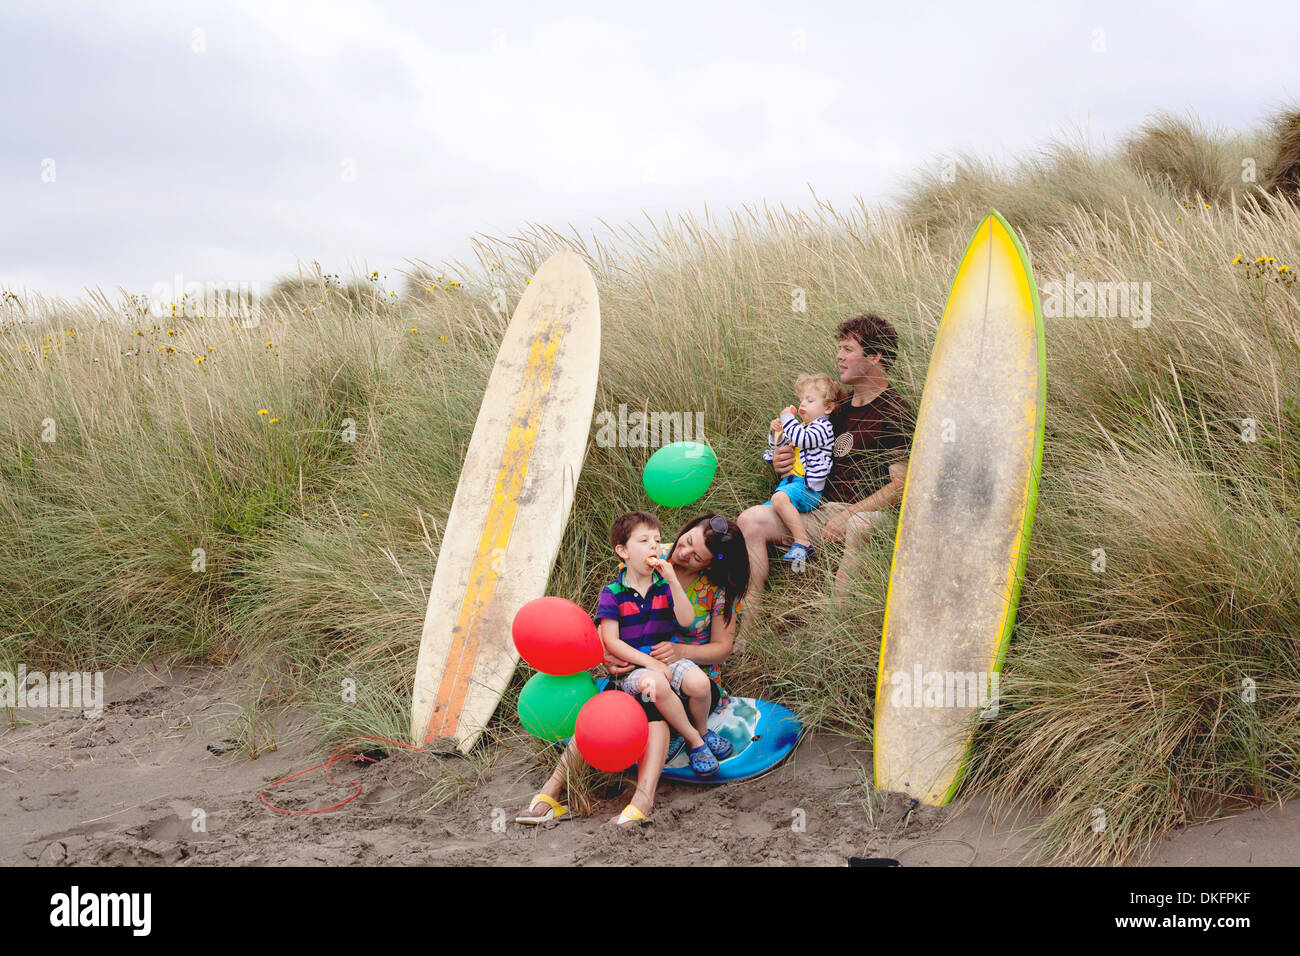 Family with two boys on beach with surfboards - Stock Image